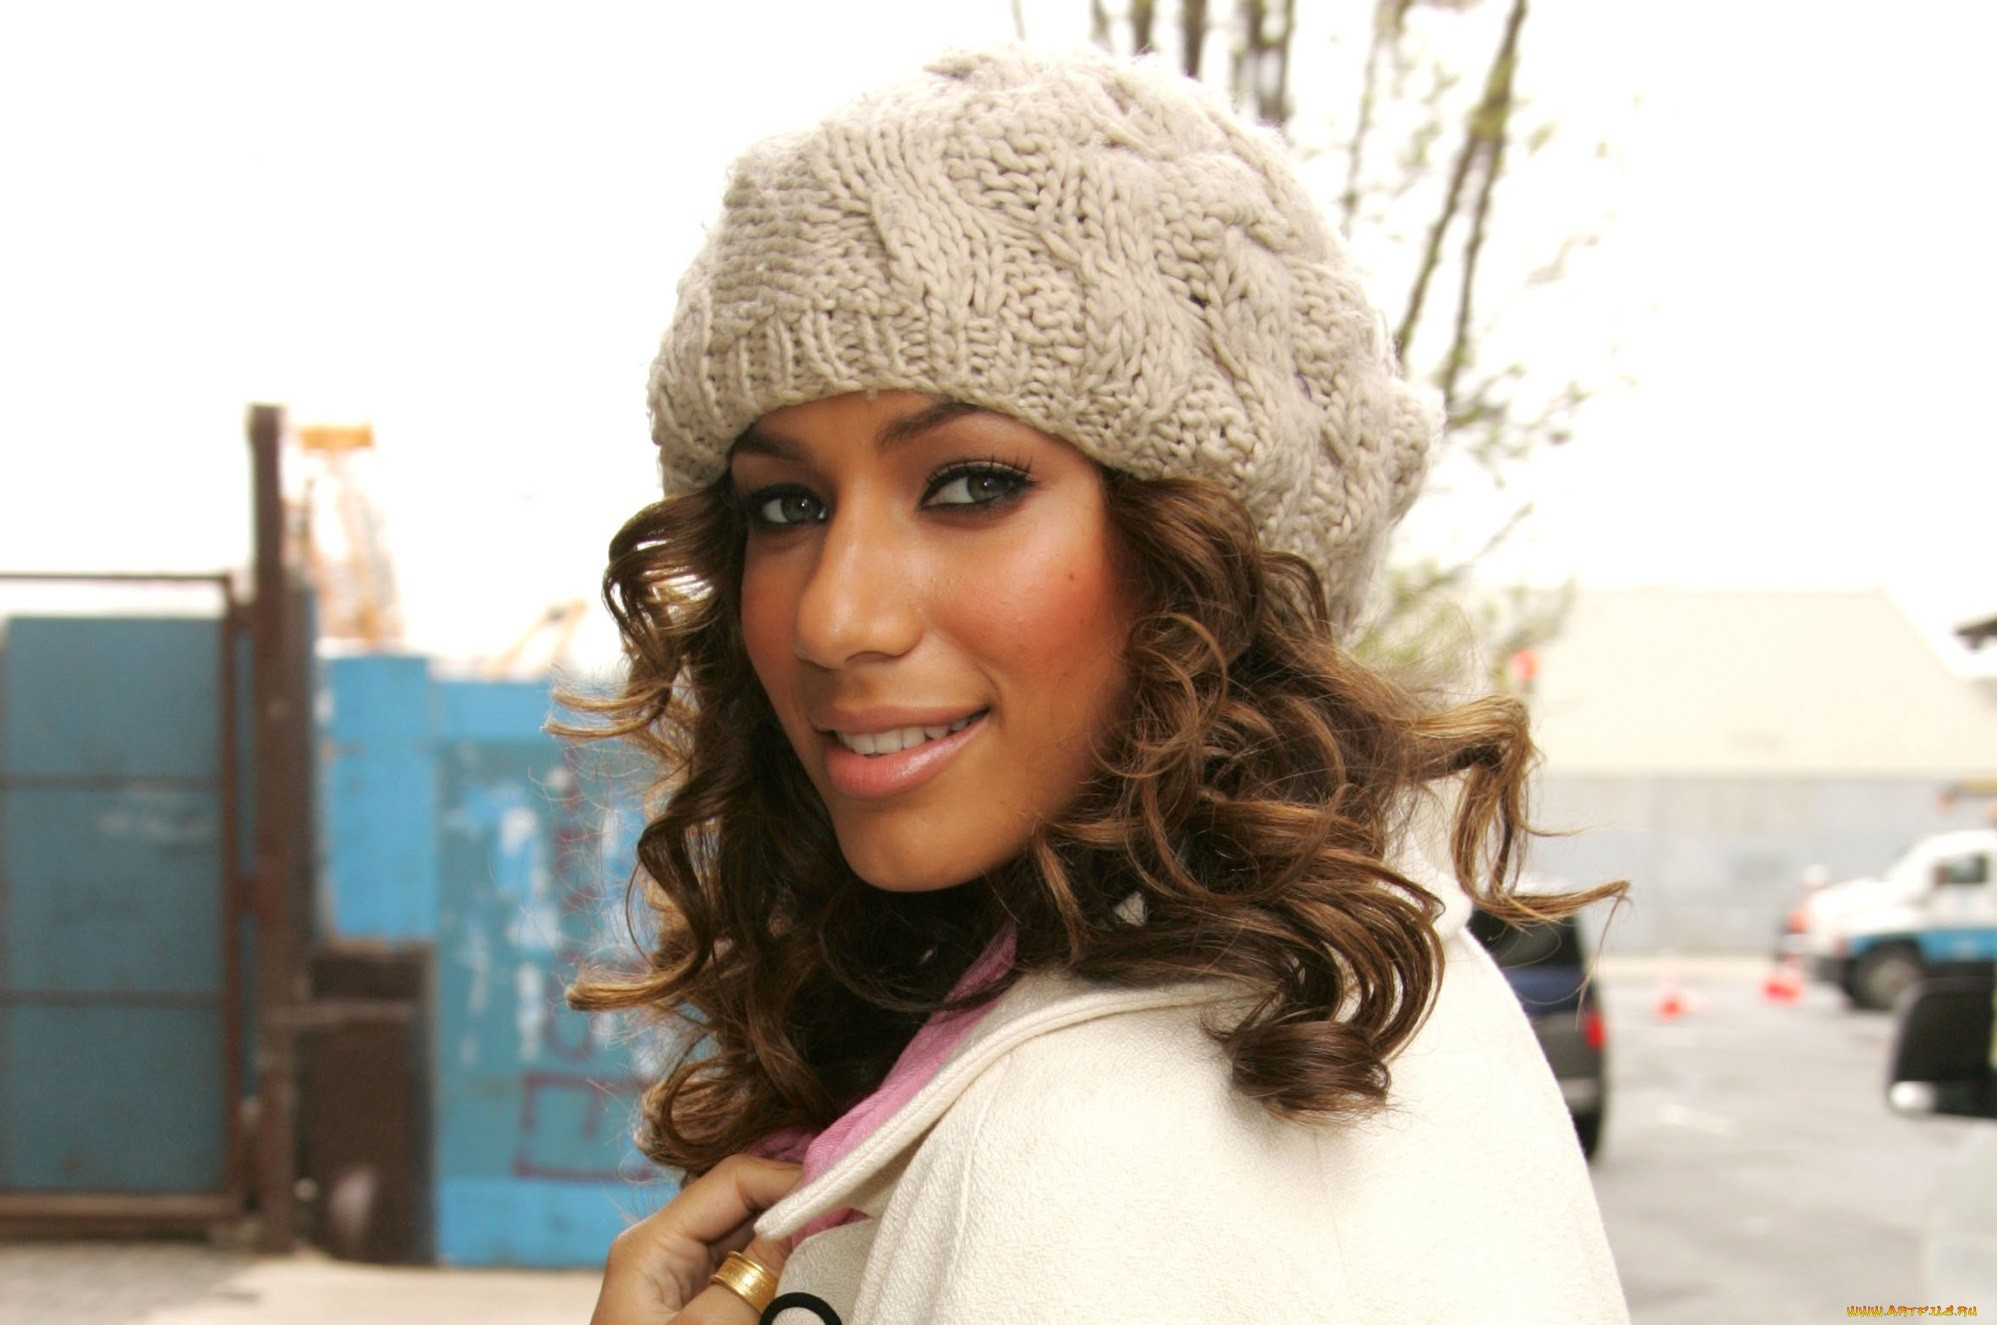 free desktop hd fantastic leona lewis wallpaper